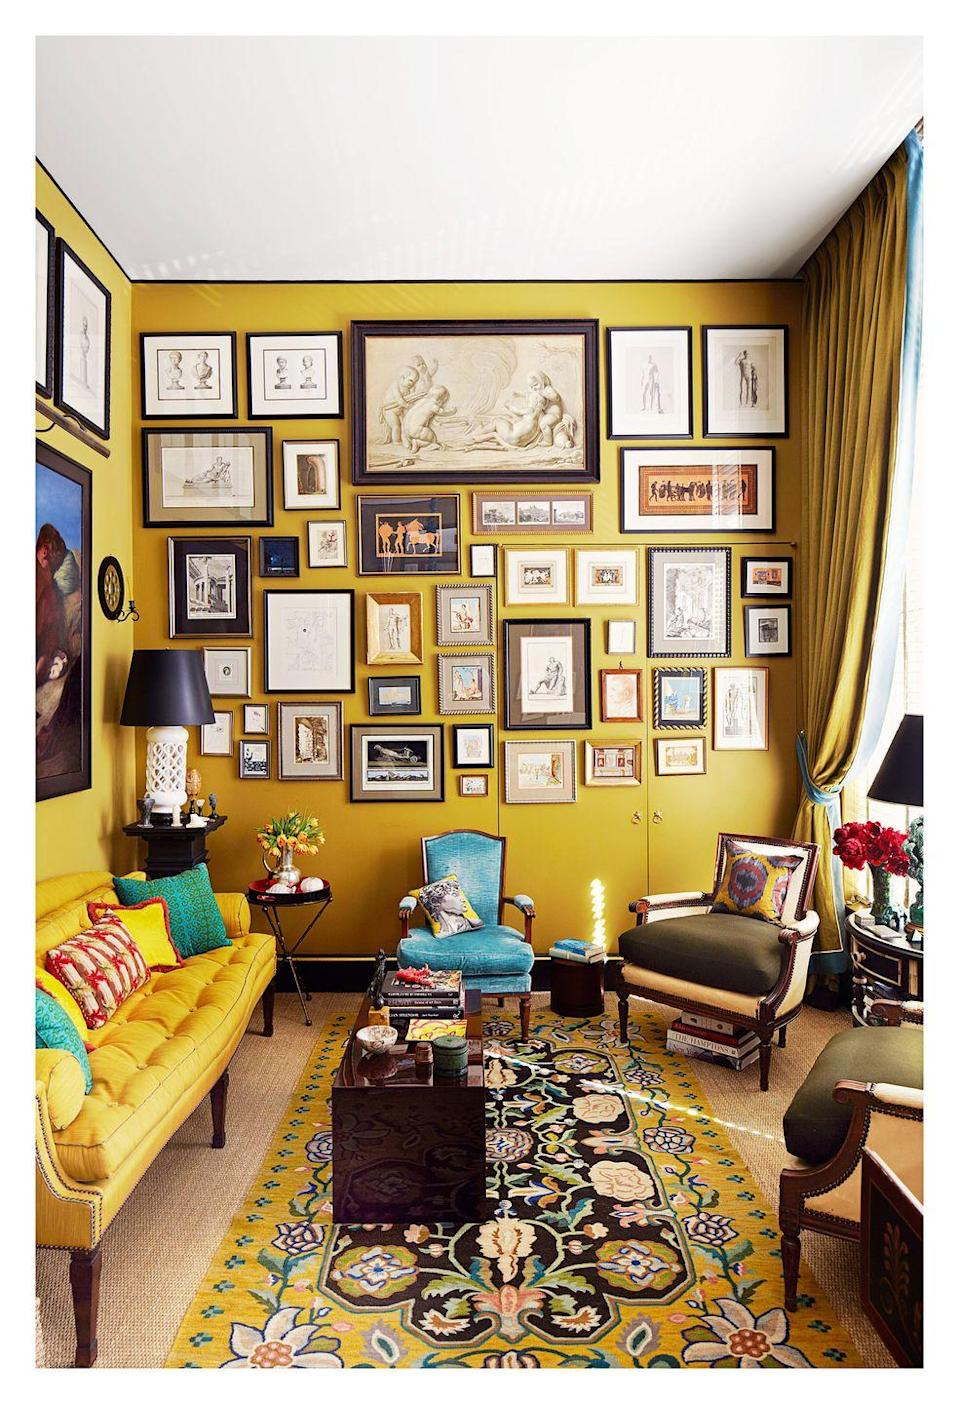 """<p>Before we even comment on paint color, can we just take a moment to appreciate that wild gallery? This marigold living room designed by <a href=""""https://brockschmidtandcoleman.com/"""" rel=""""nofollow noopener"""" target=""""_blank"""" data-ylk=""""slk:Brockschmidt & Coleman"""" class=""""link rapid-noclick-resp"""">Brockschmidt & Coleman</a> is at once classic and quirky, unique and timeless. The walls are covered in <a href=""""https://www.benjaminmoore.com/en-us/color-overview/find-your-color/color/2151-10/mustard-olive?color=2151-10"""" rel=""""nofollow noopener"""" target=""""_blank"""" data-ylk=""""slk:Mustard Olive by Benajmin Moore"""" class=""""link rapid-noclick-resp"""">Mustard Olive by Benajmin Moore</a> and bordered at the ceiling in black. </p>"""